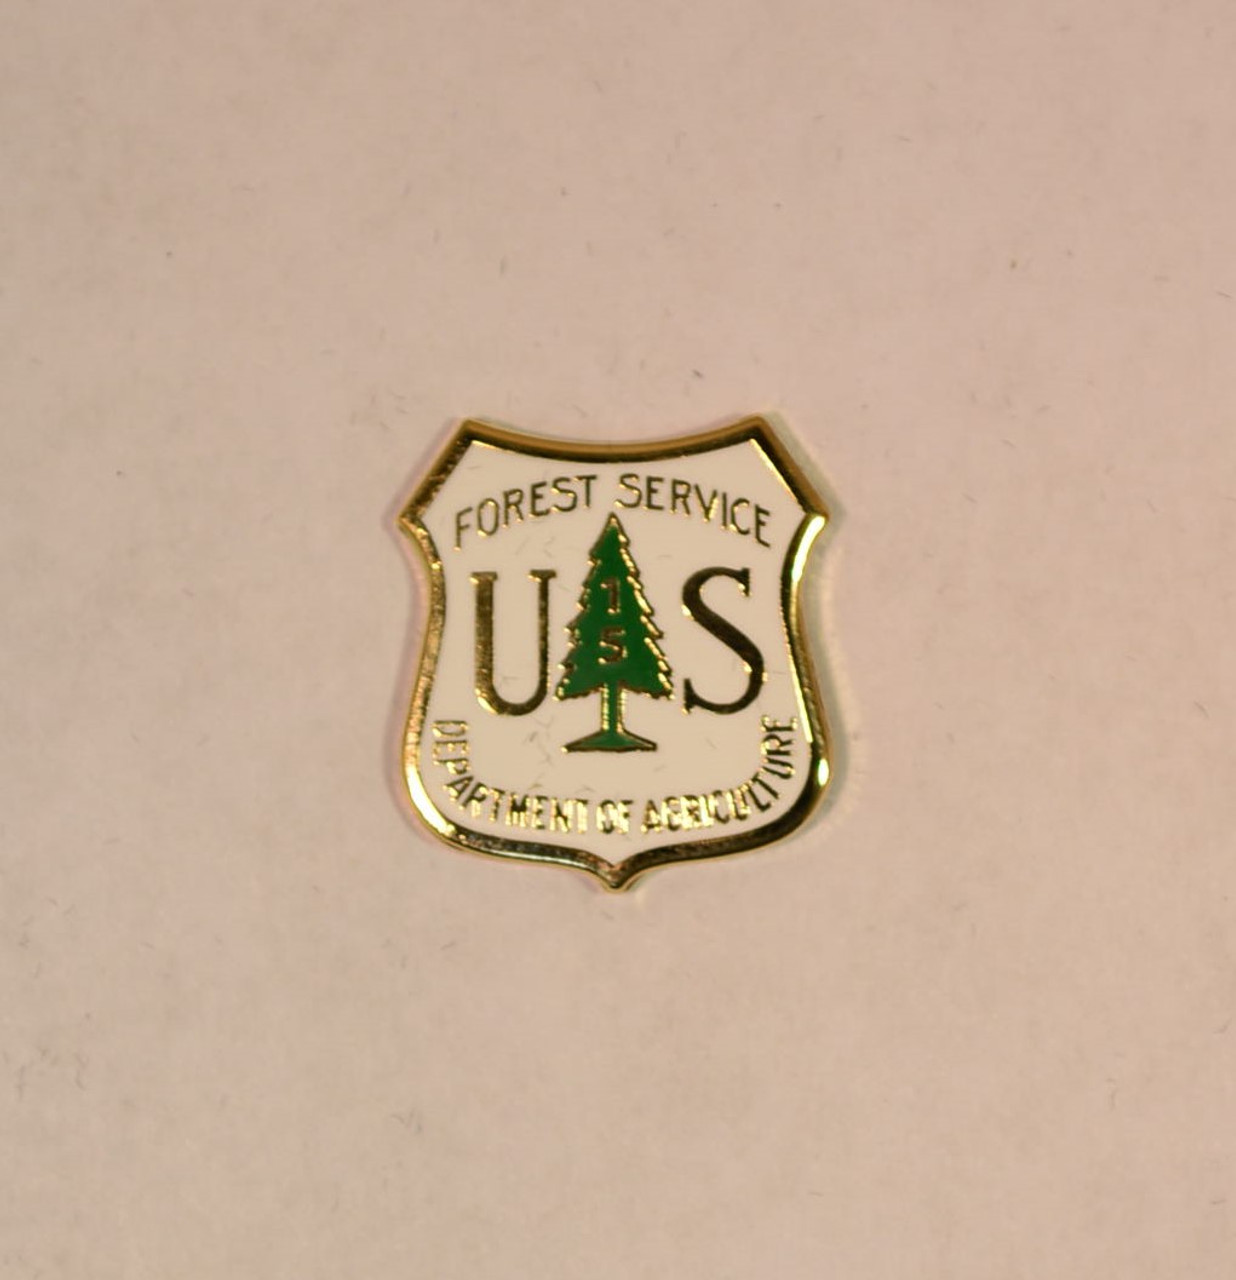 US Forest Service Years of Service Pin (15 years)